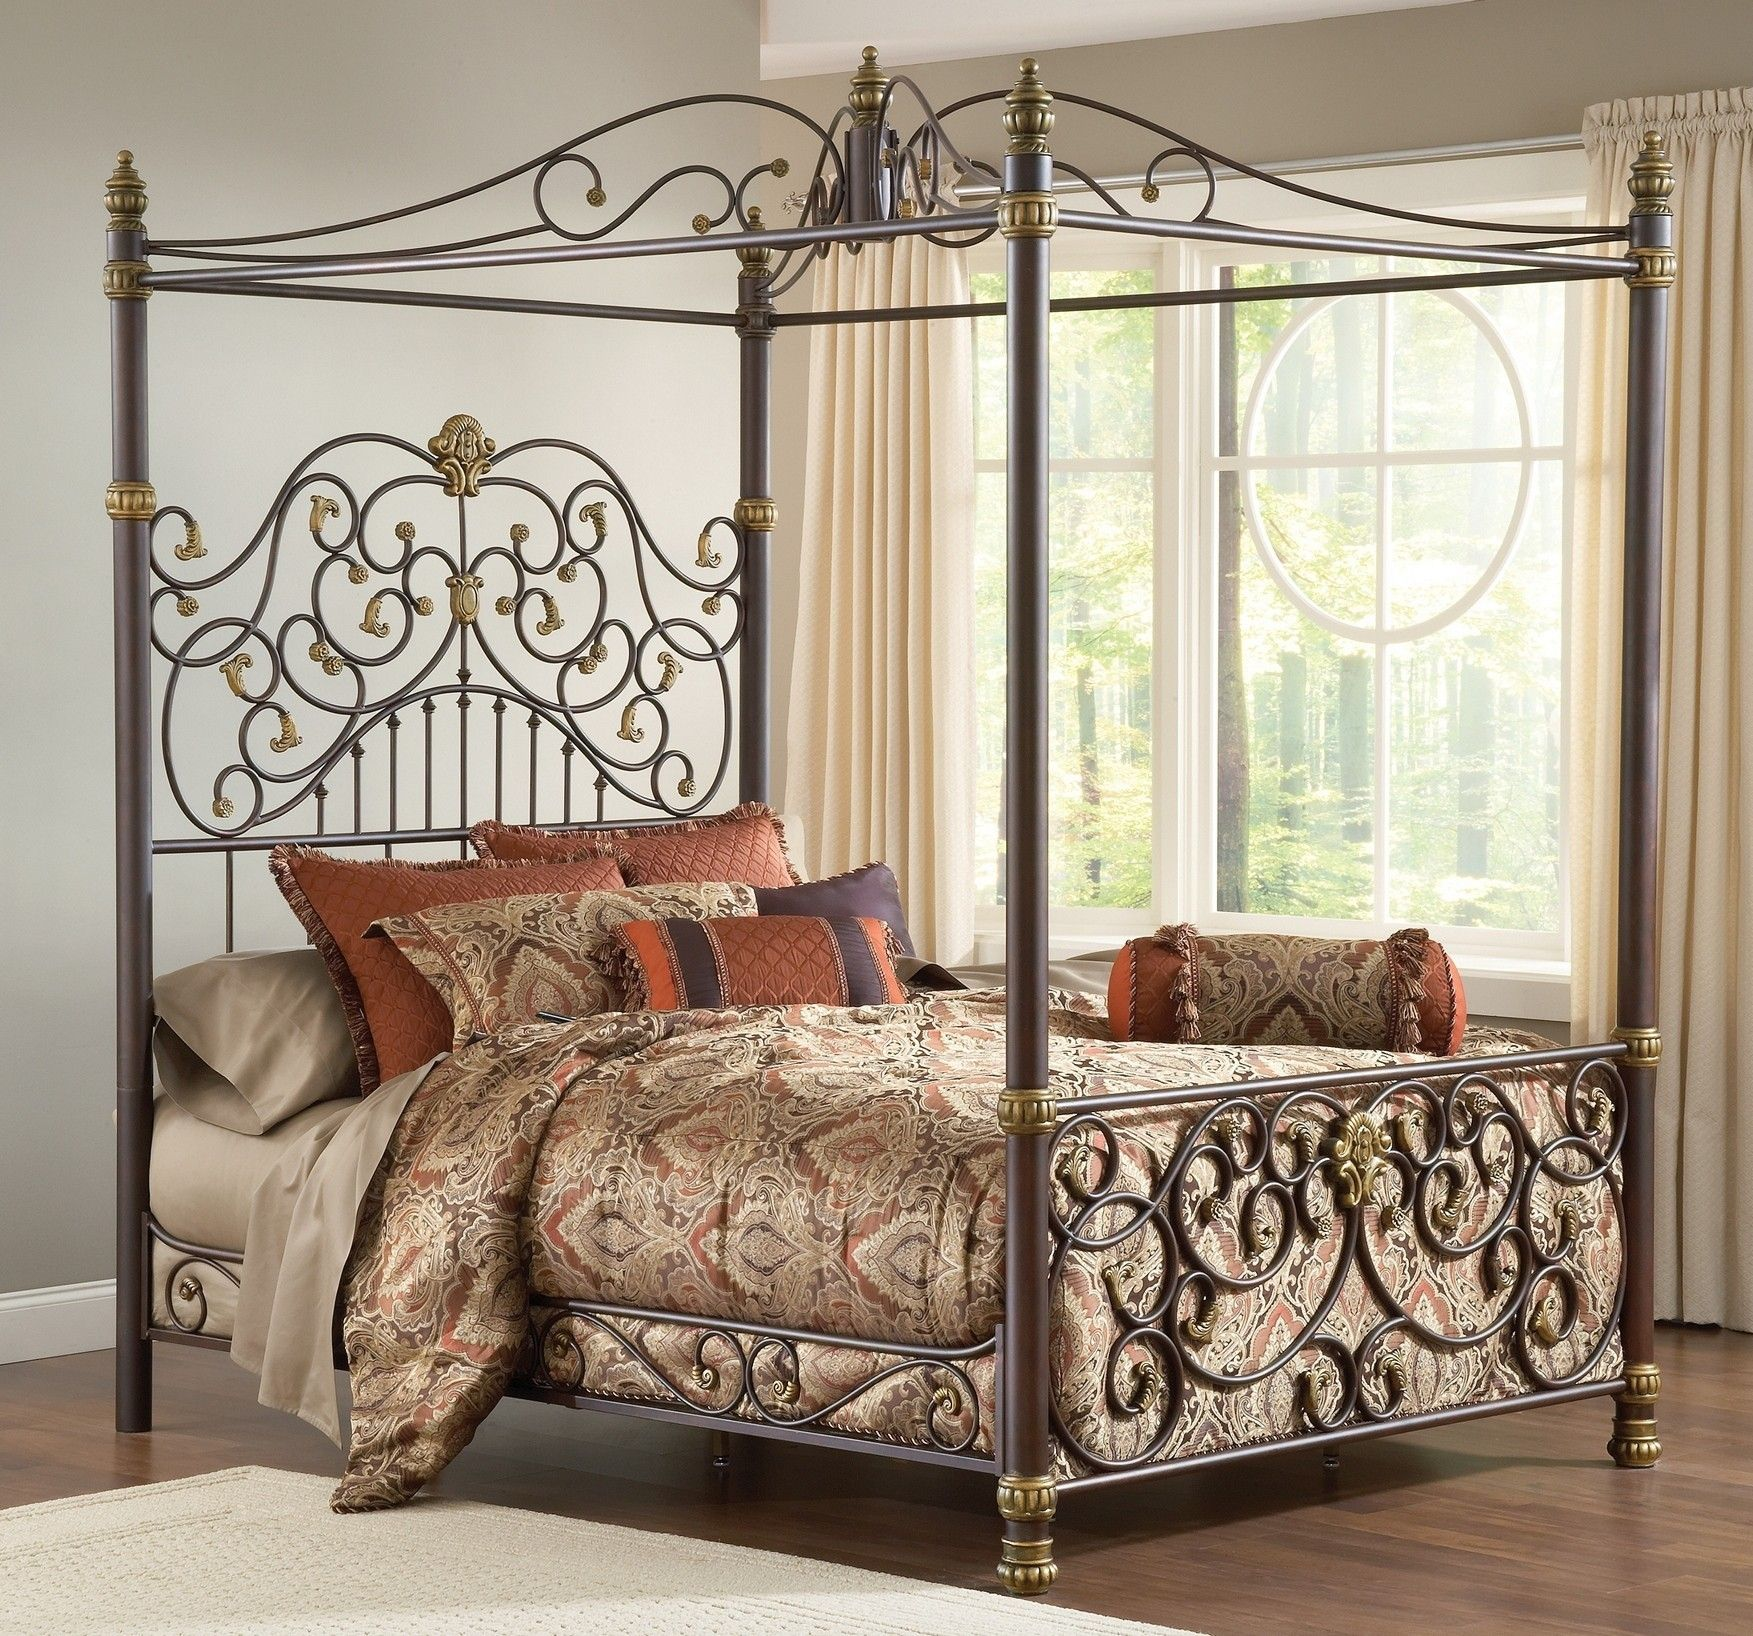 Dark Iron Canopy Bed Frame With Gold Bedding Set Decor Iron